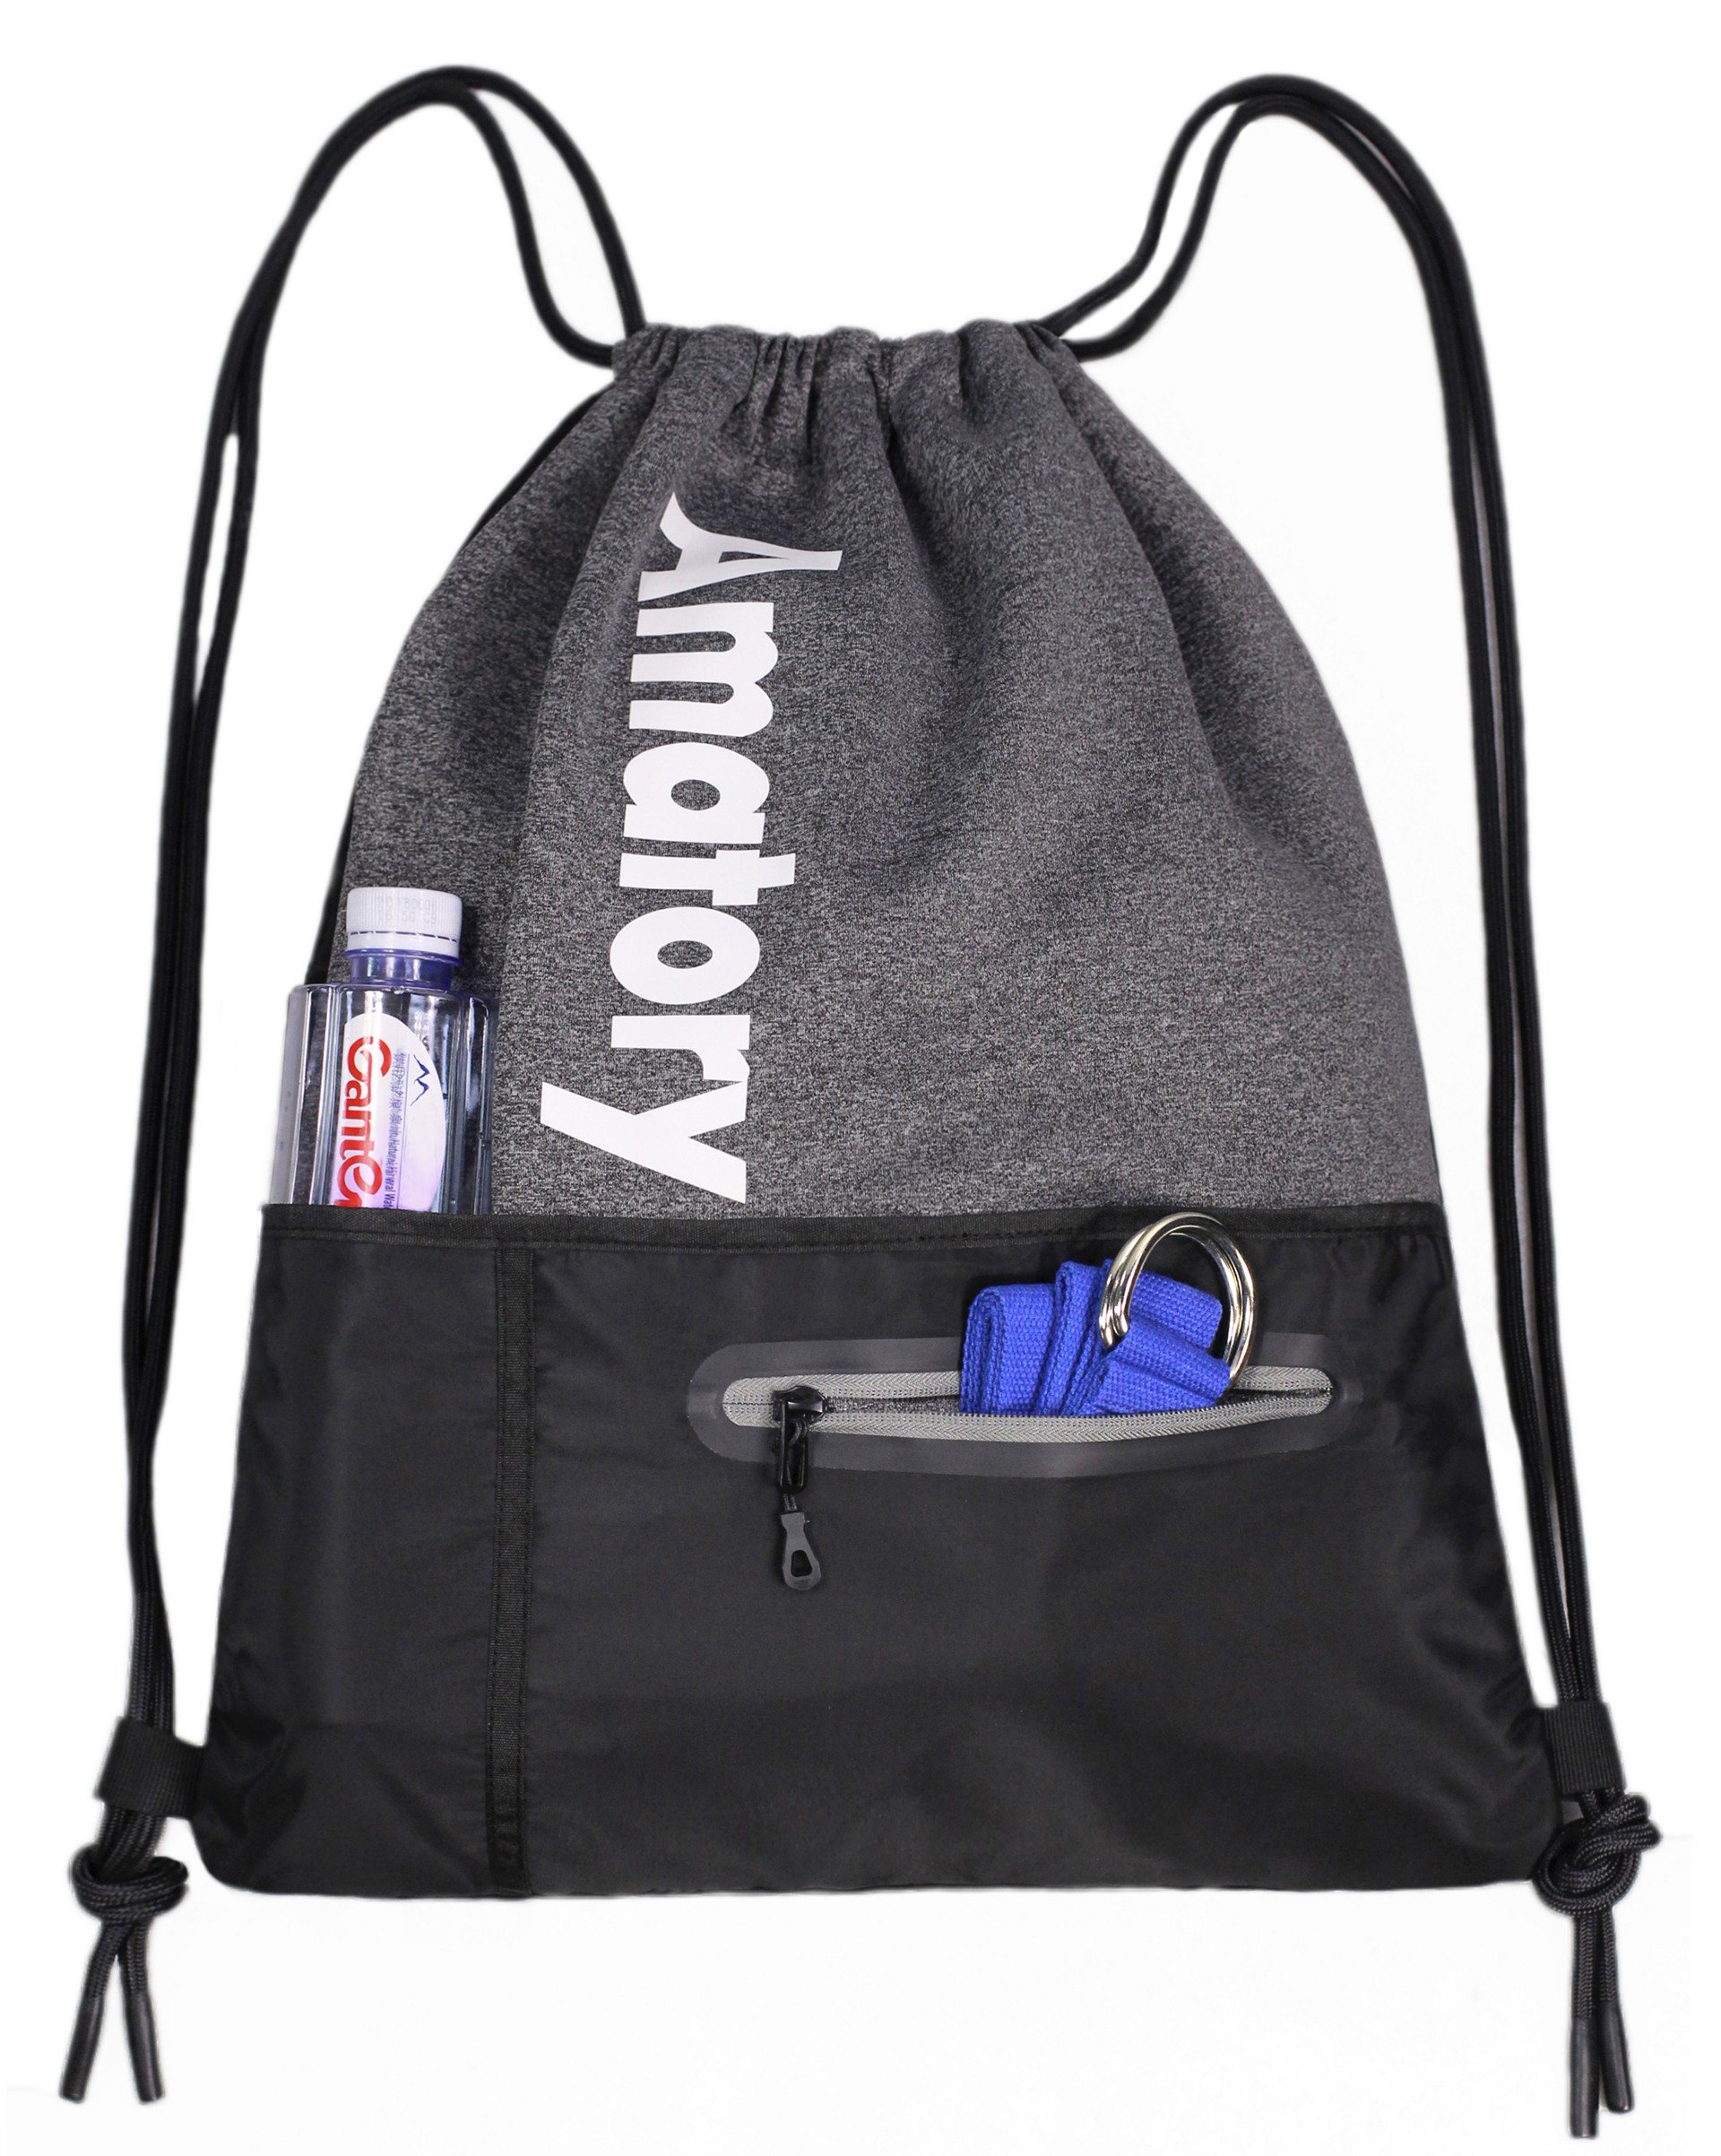 Drawstring Backpack Sports Athletic Cinch Sack Gymsack Sackpack Gym String Bag (Gray)